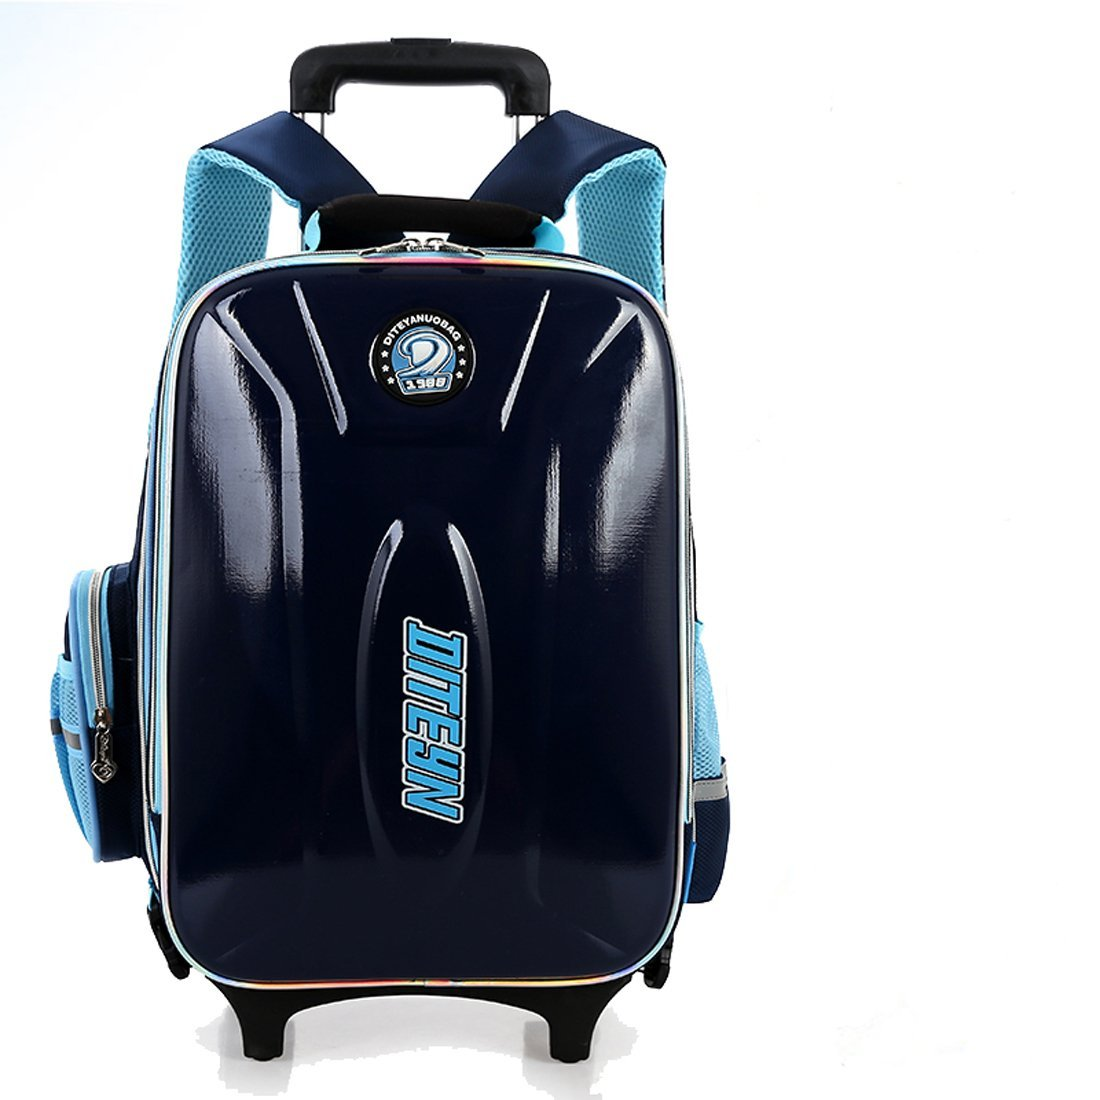 0815eb4a7102 Cheap Luggage Backpack Wheels, find Luggage Backpack Wheels deals on ...